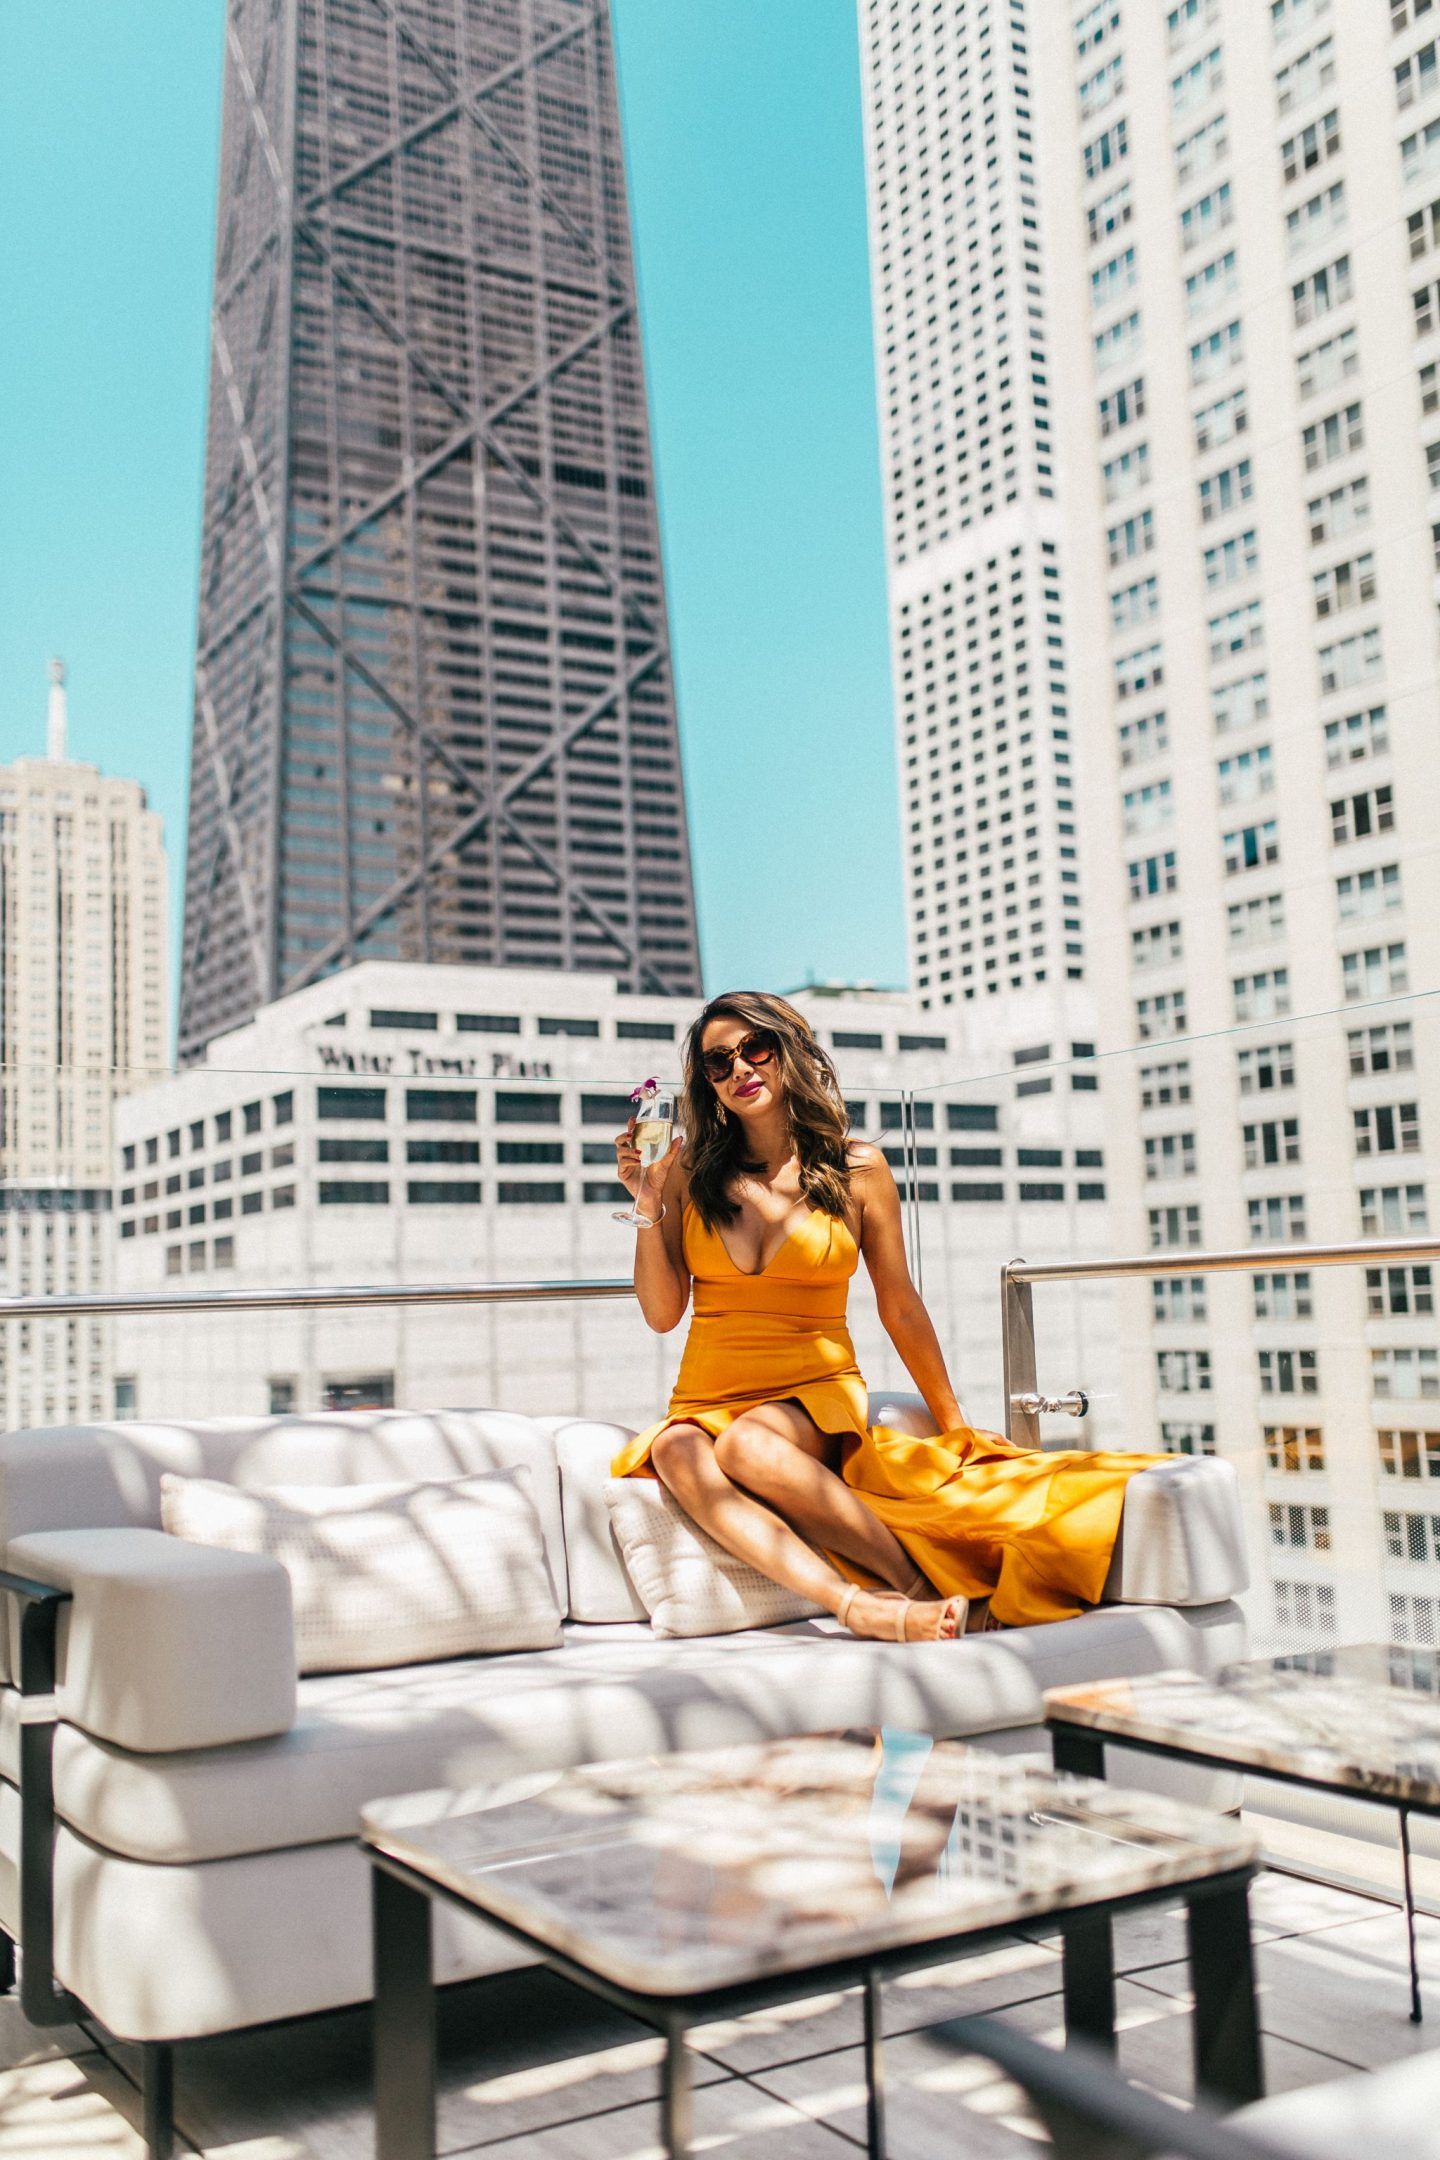 Z Bar Peninsula, Best Chicago Rooftop Bars, Best Bars in Chicago, Jennifer Worman